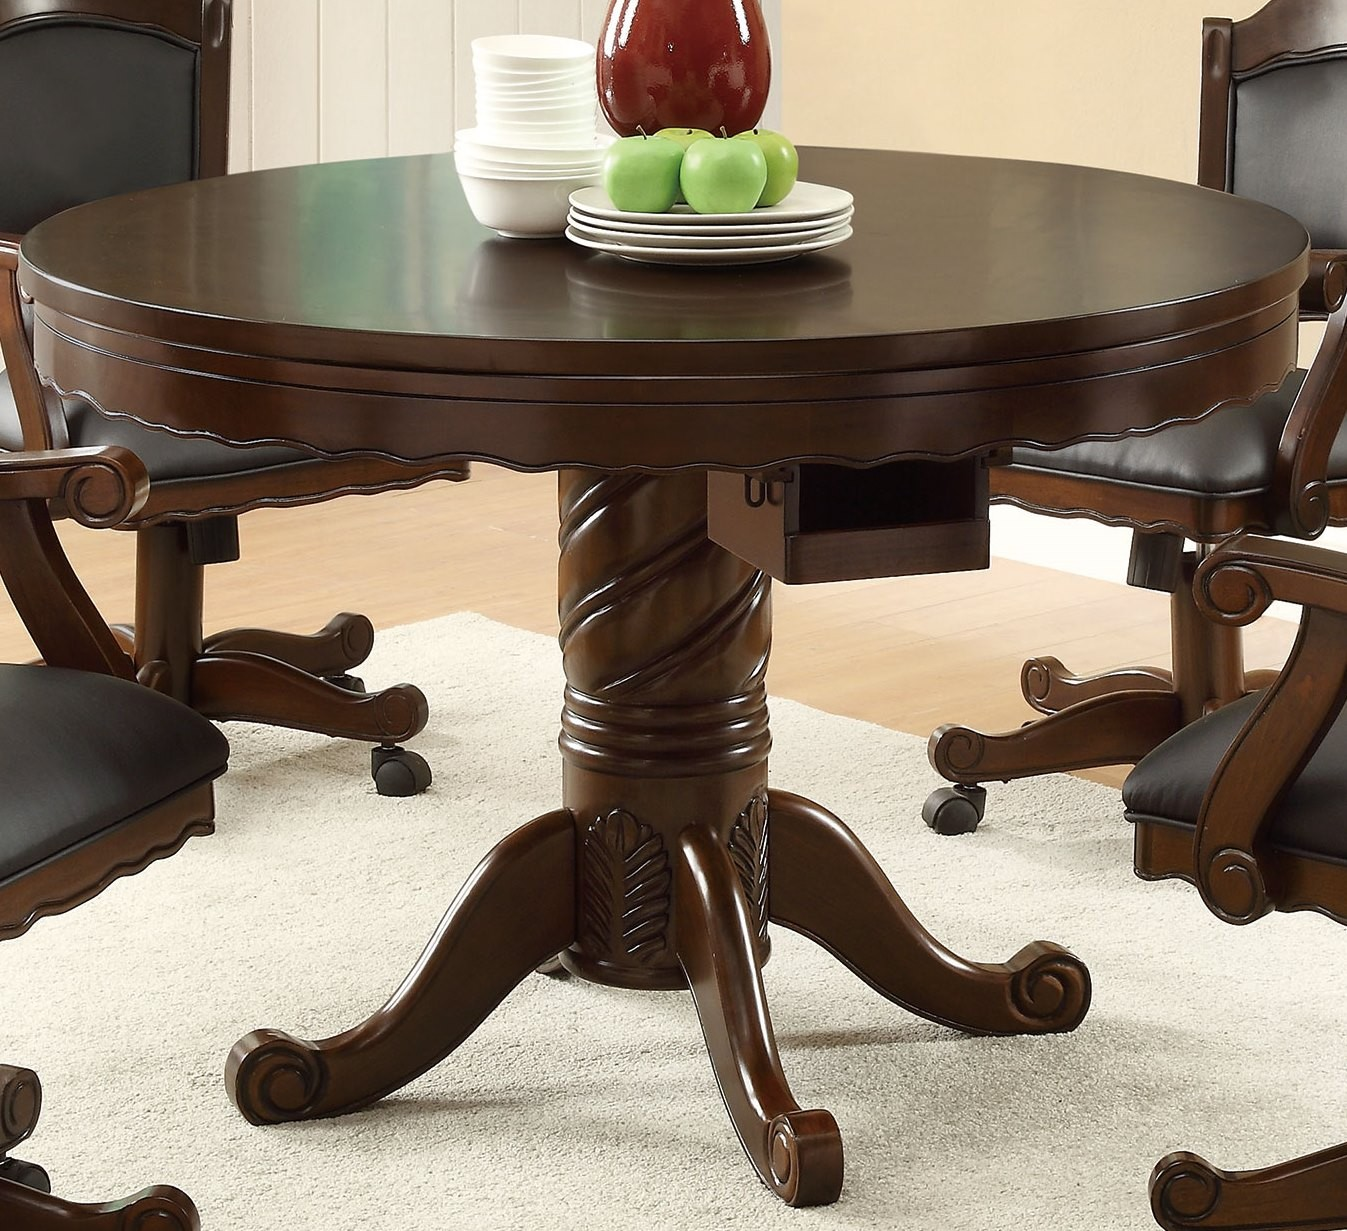 Gaming Collection Three In One Poker Bumper Pool Dining Table  100871 From  Coaster (100871) | Coleman Furniture